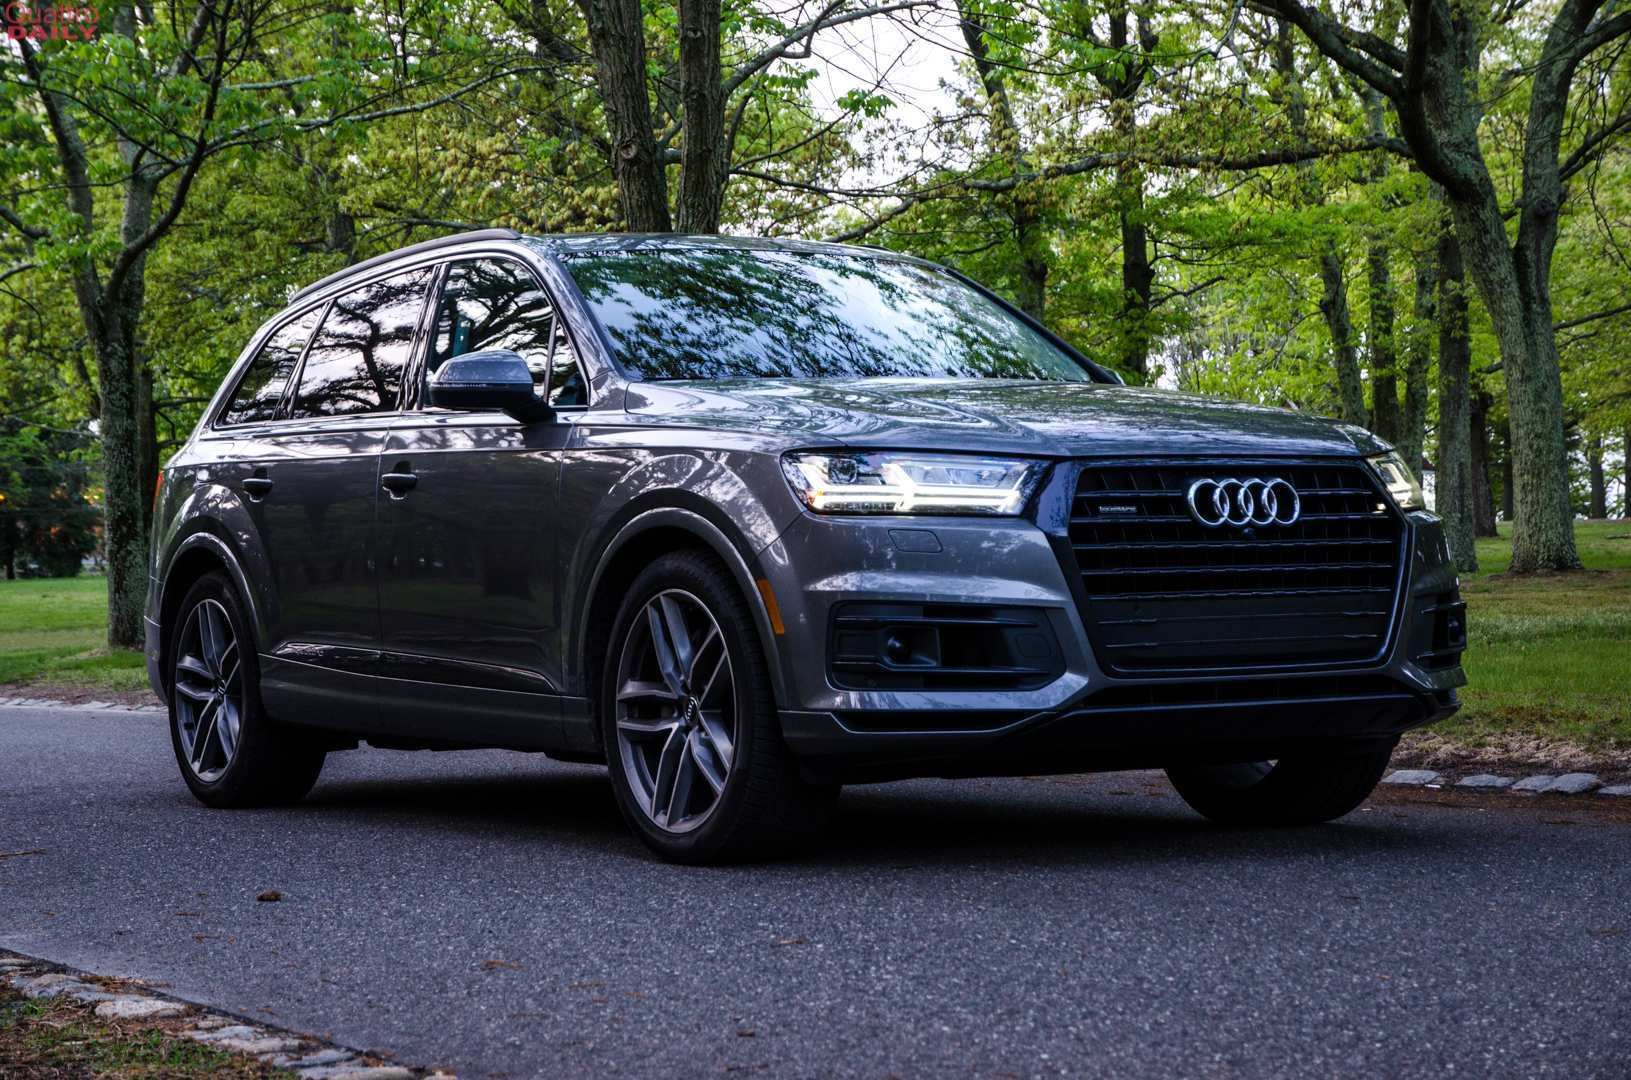 23 Great 2020 Audi Q7 Price and Review by 2020 Audi Q7